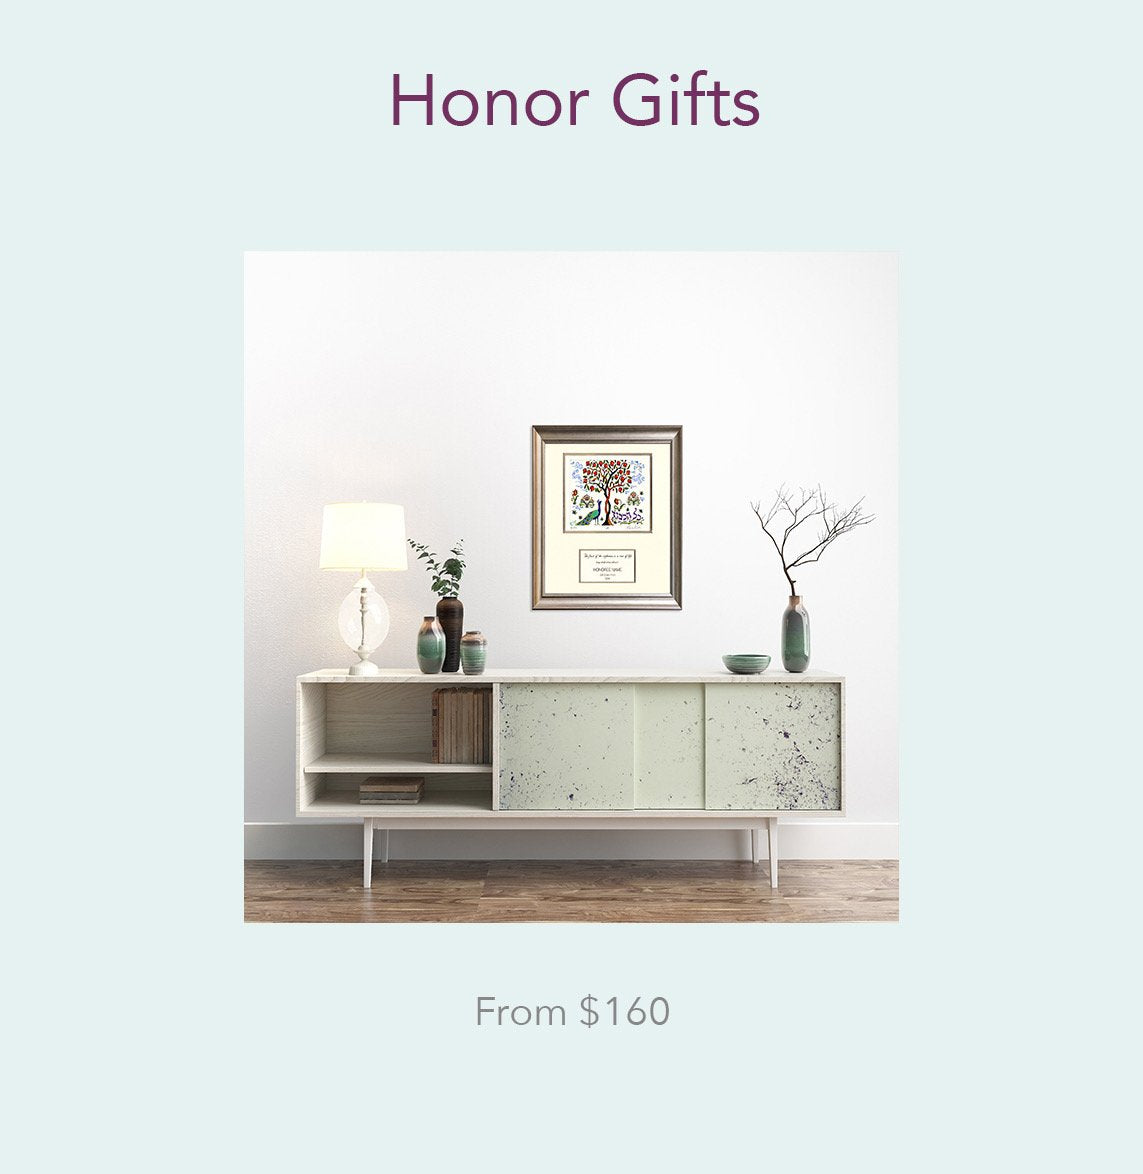 Honor Gifts